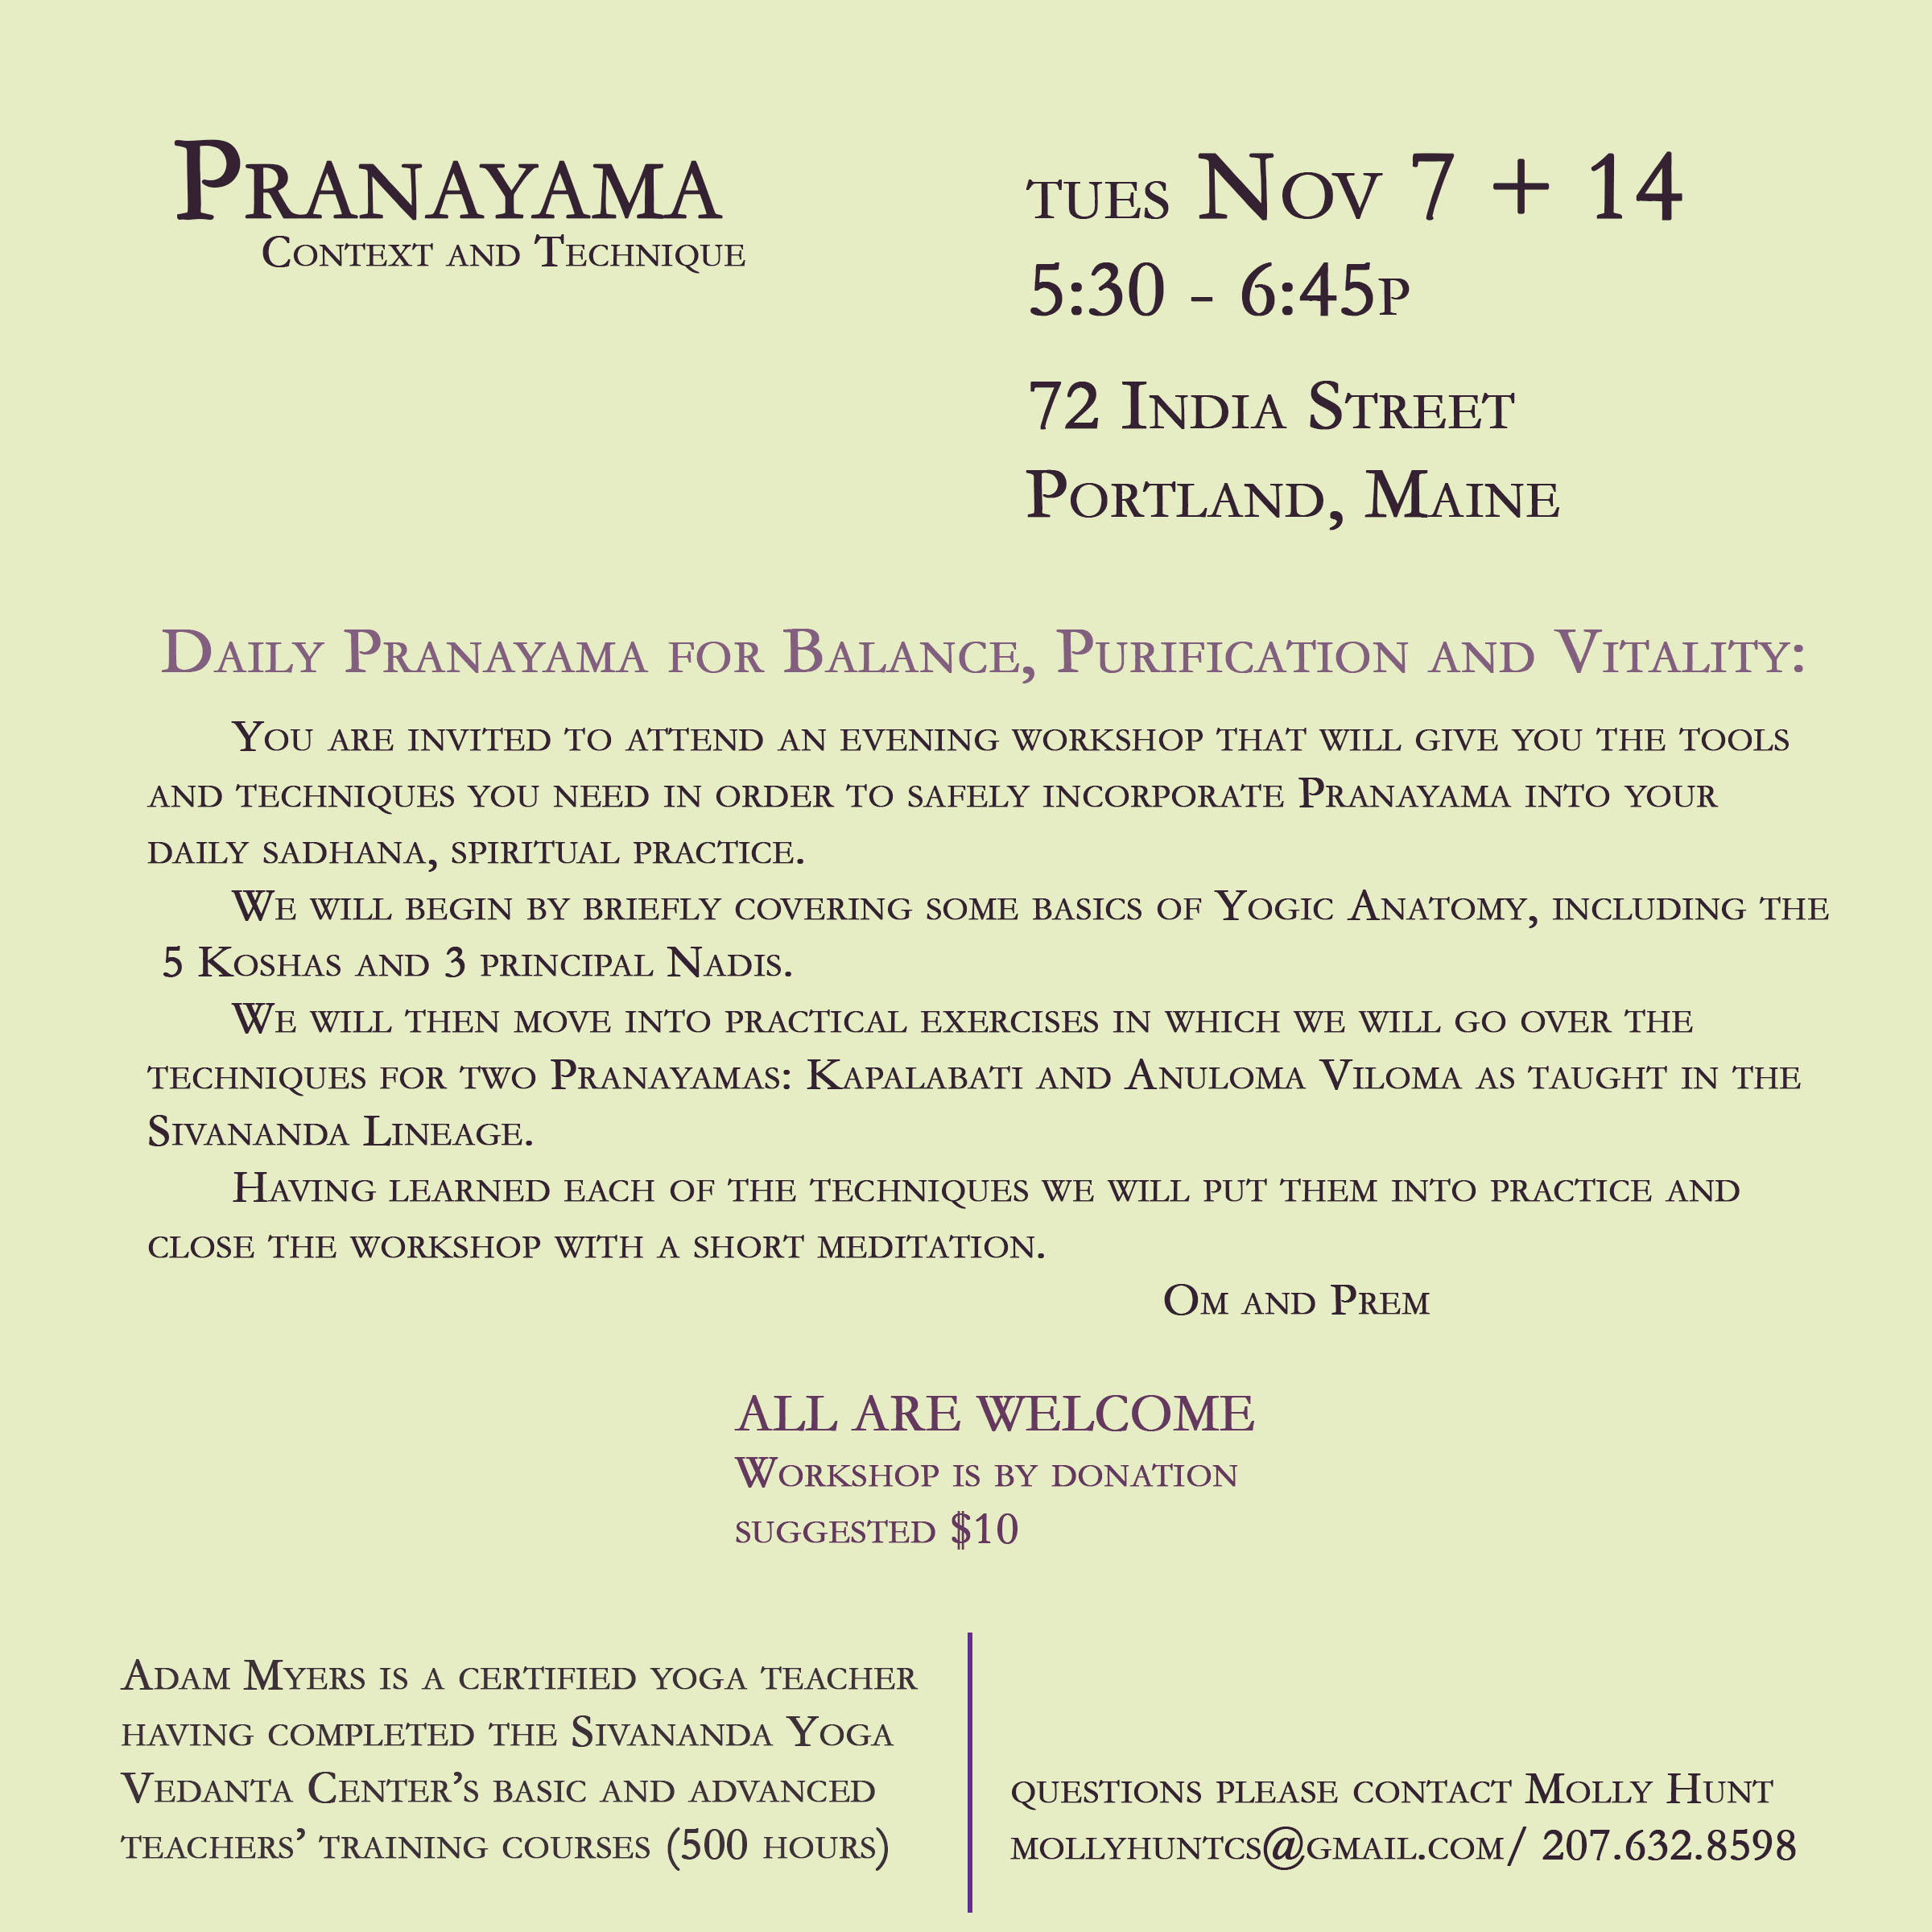 - Pranayama with Adam Myers, a workshop on Nov 7 + Nov 14. Attend either or both sessions. Workshop is offered by donation.